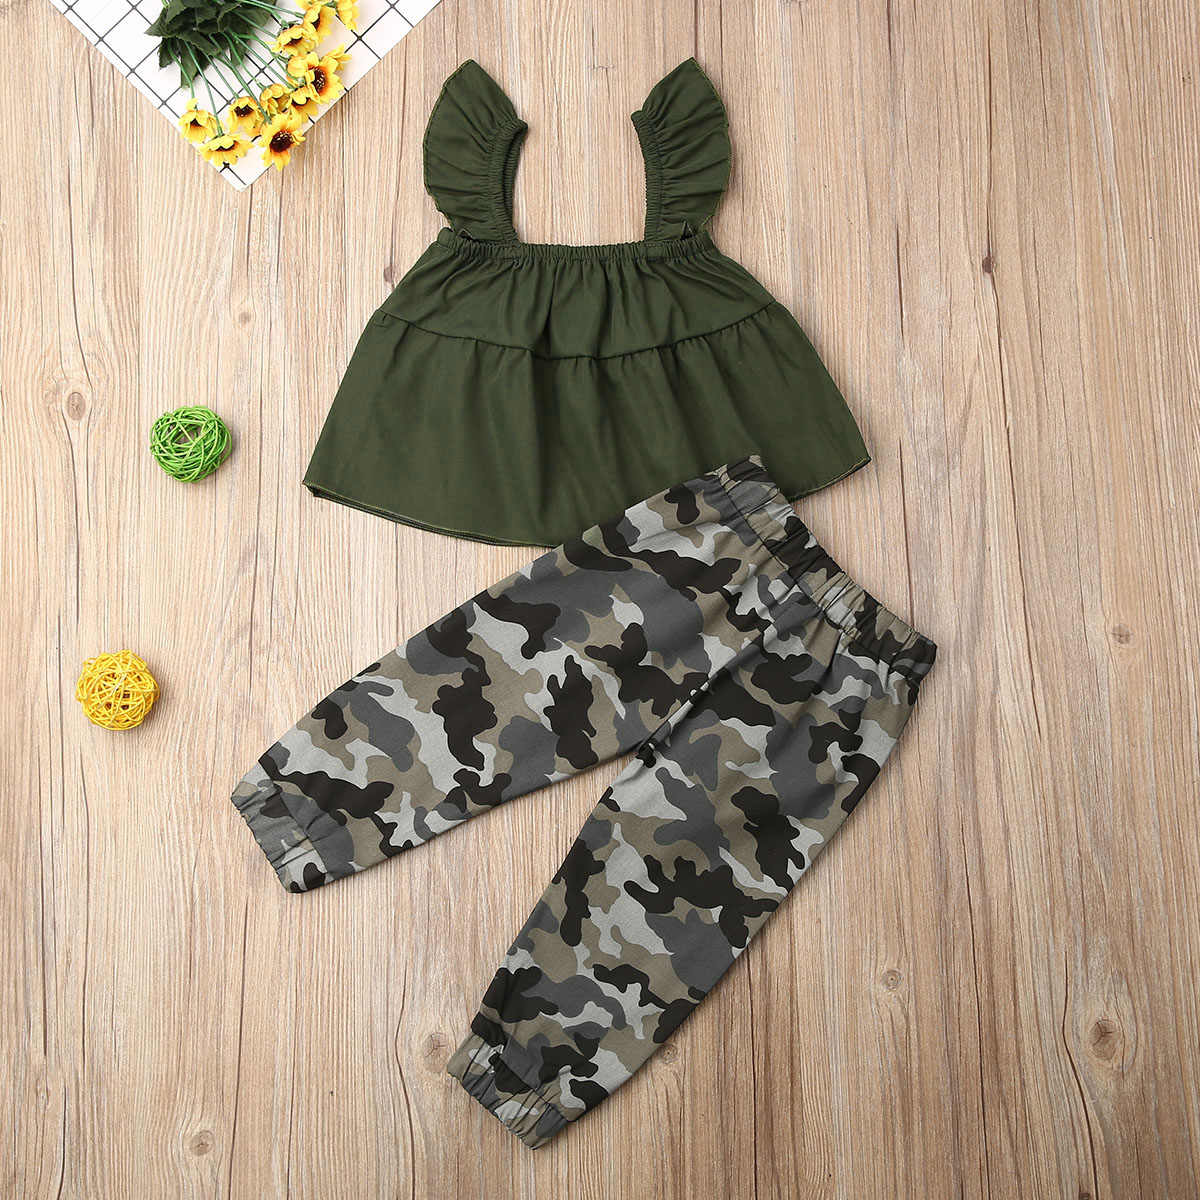 Tabpole 2PCS Toddler Kids Baby Girl Camouflage Shirt+Pants Clothes Outfits Set Tracksuit